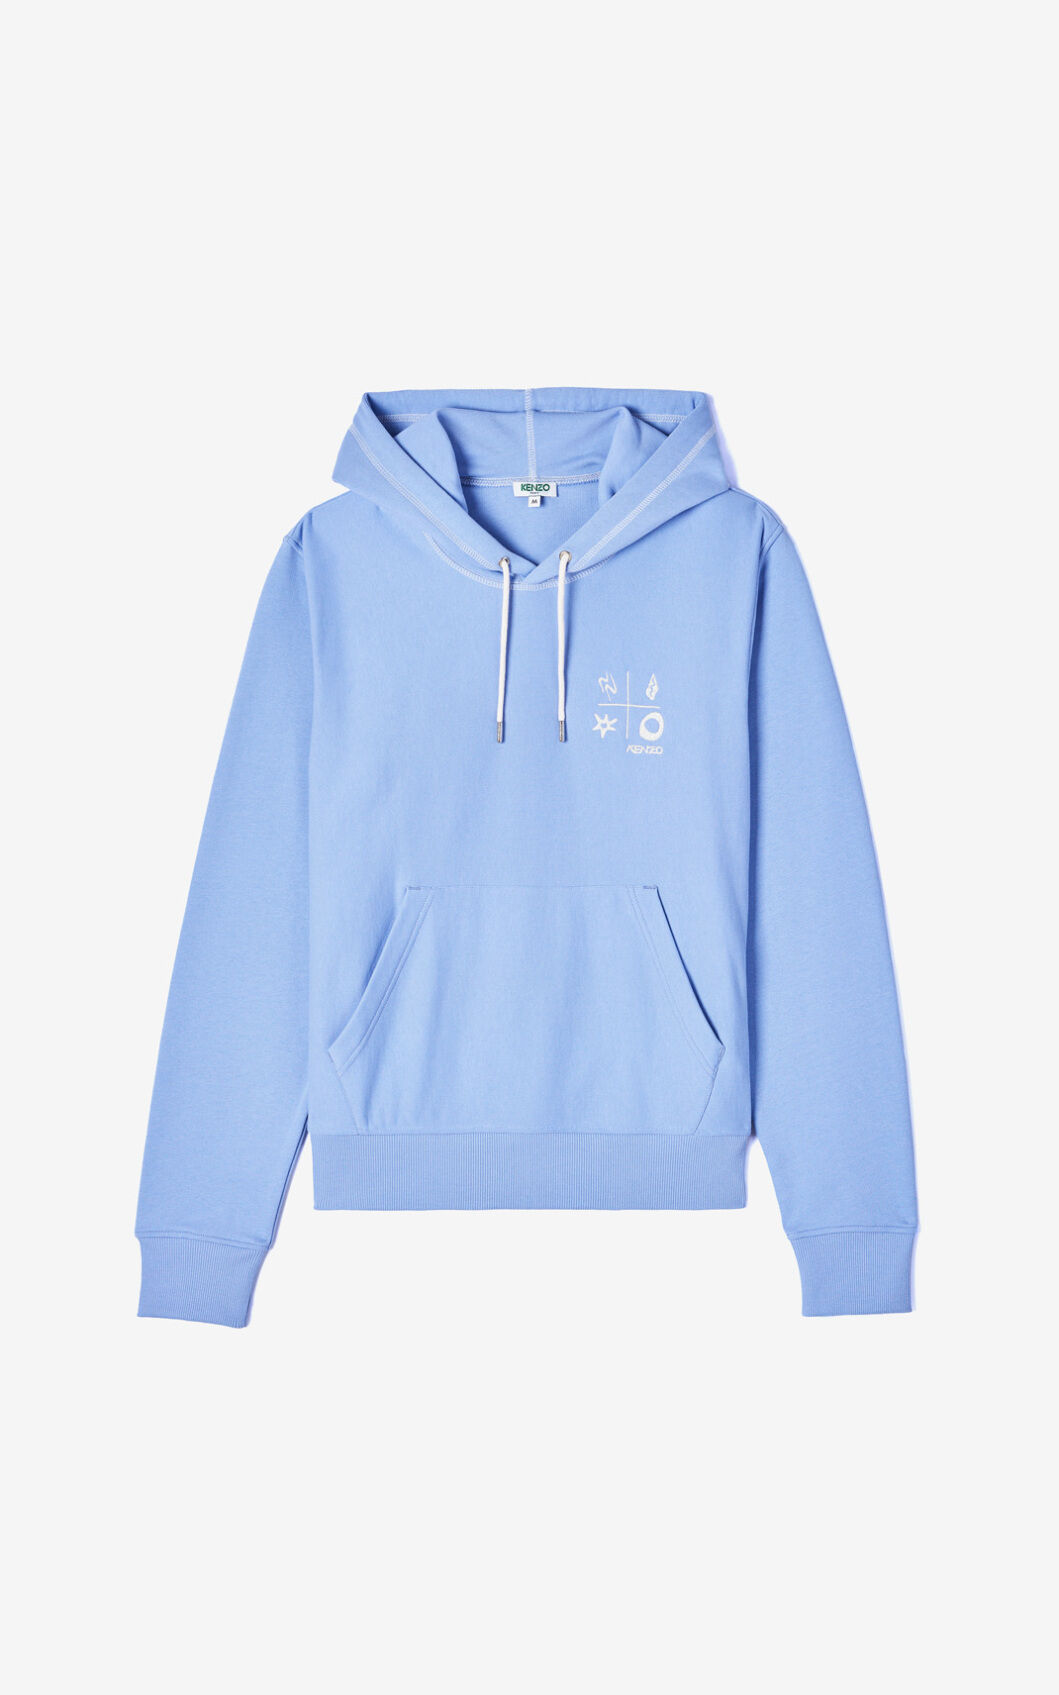 Compass Mens Front Pocket Pullover Cotton Hoodie Sweatshirts